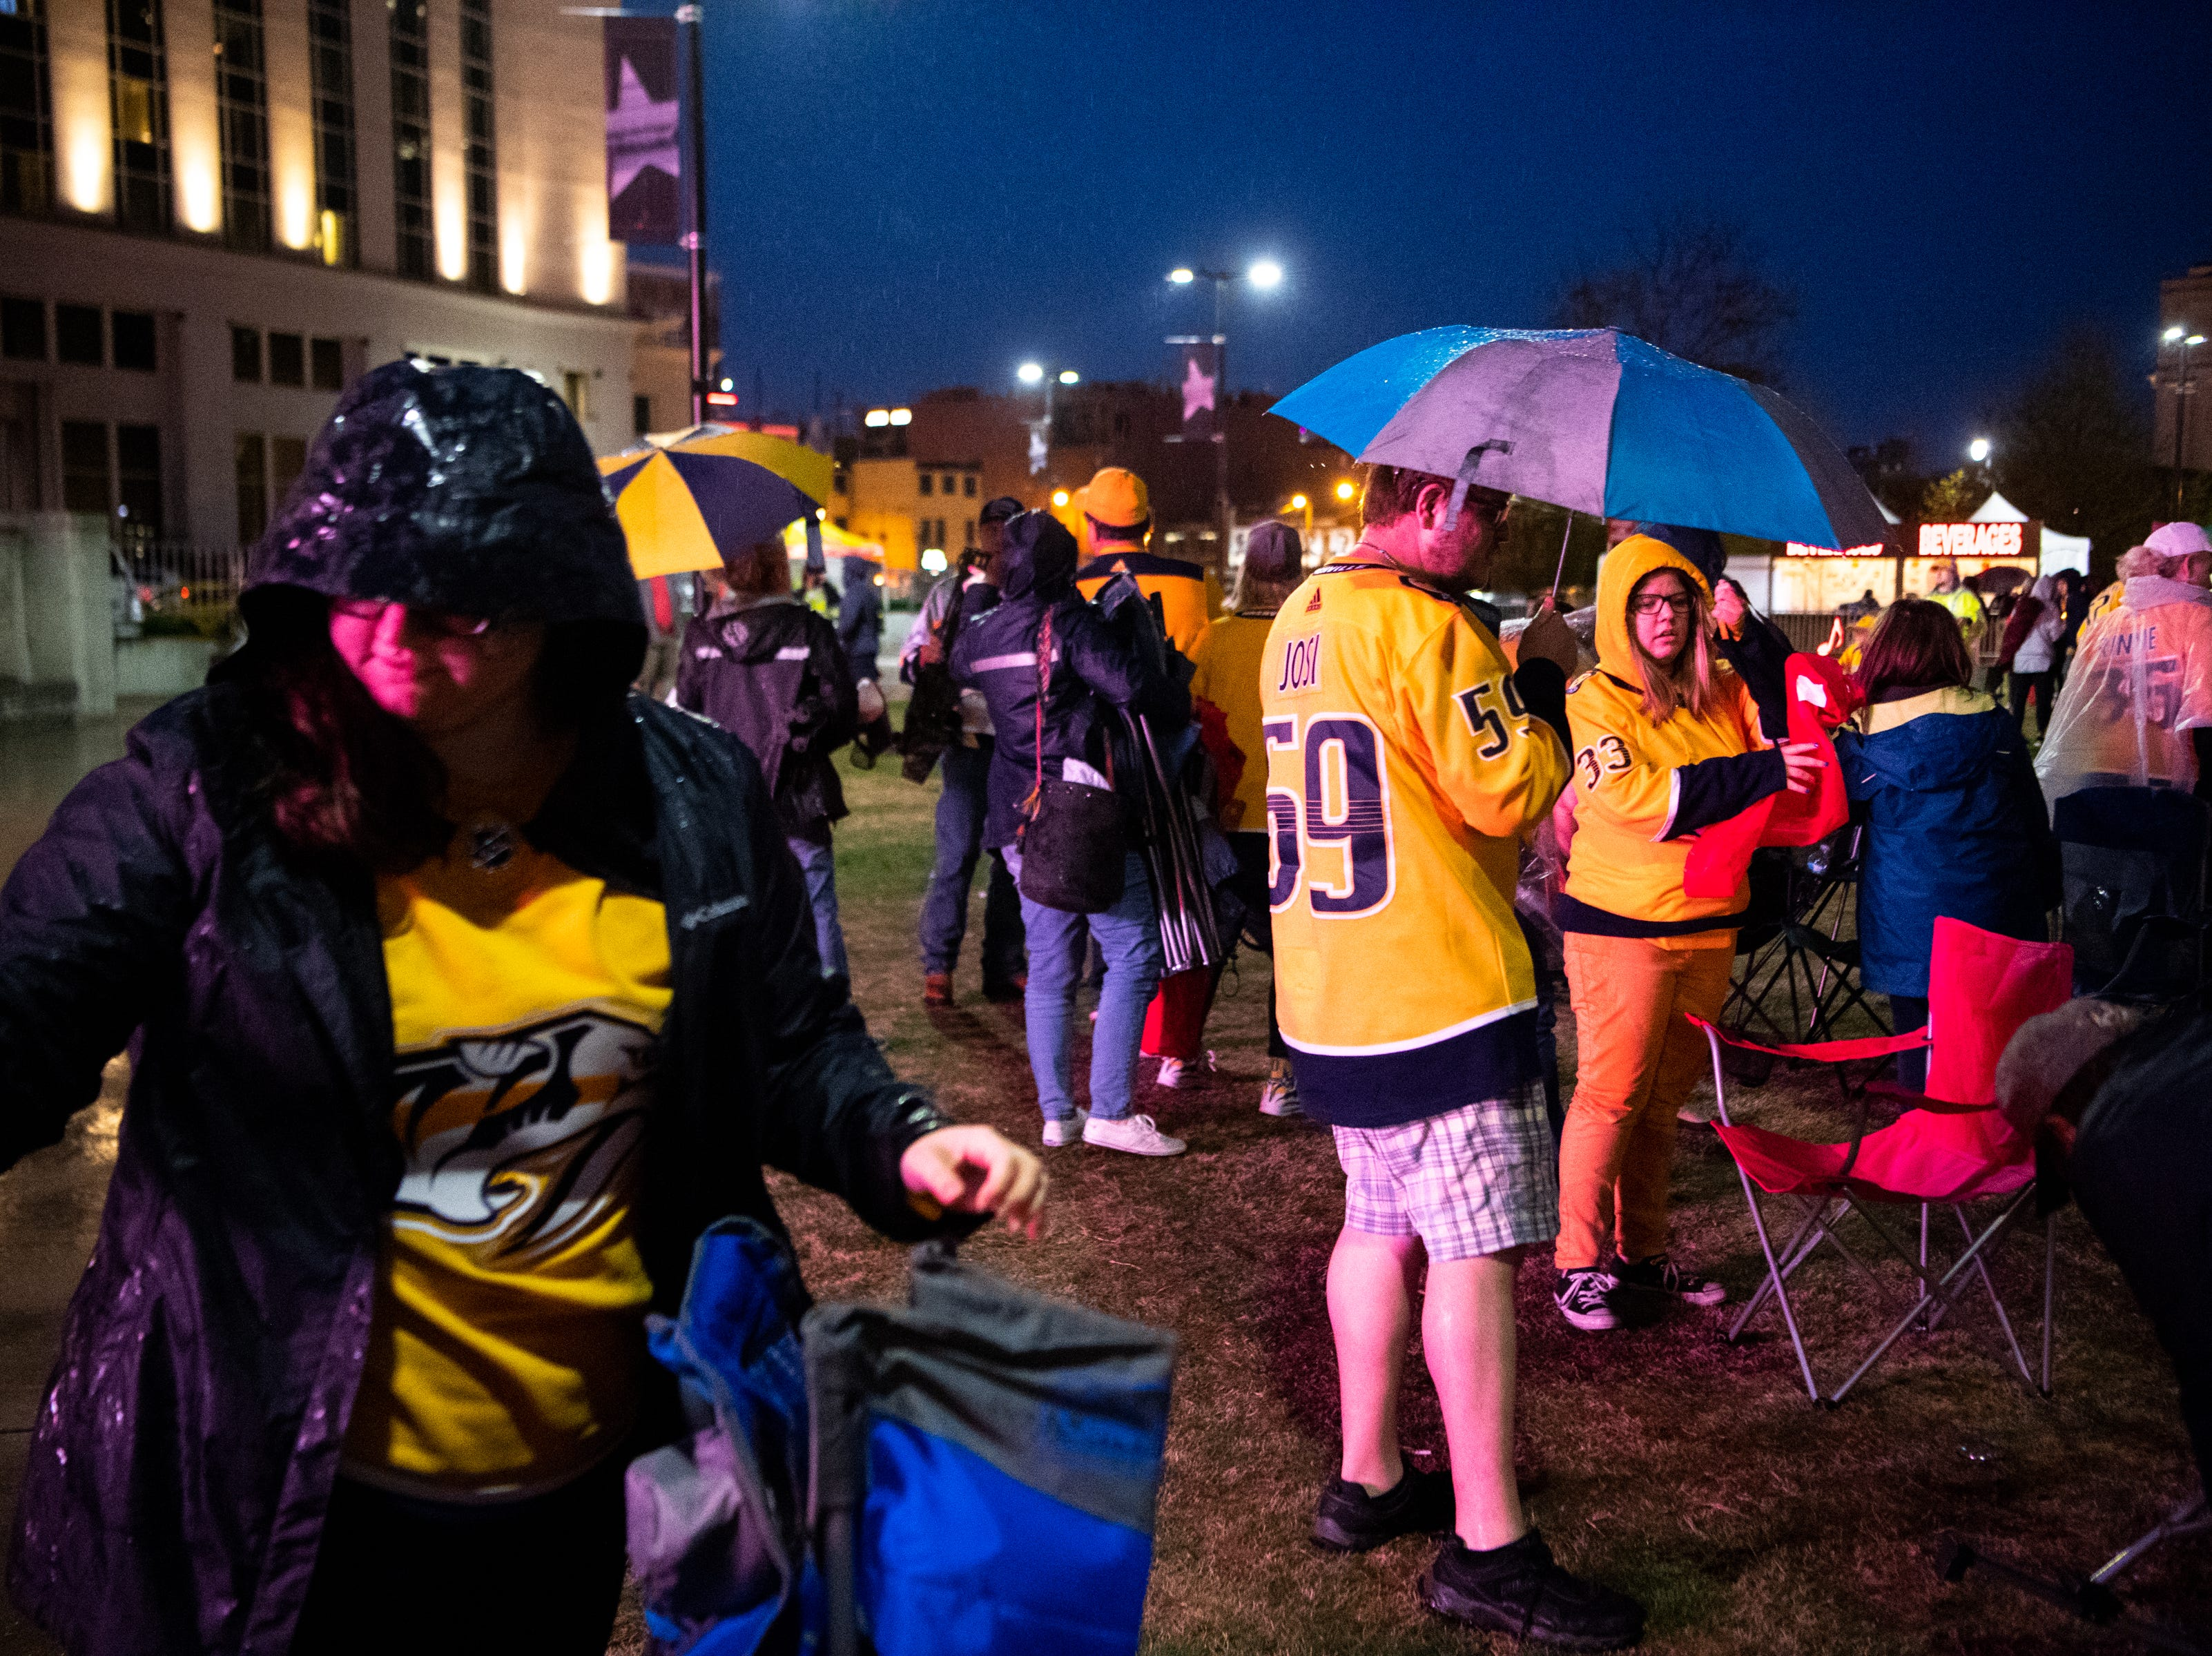 People pack up their belongings after a severe weather warning caused the cancelation of Preds Party in the Park at Walk of Fame Park during the third period of the Nashville Predators game against the Dallas Stars  Saturday, April 13, 2019, in Nashville, Tenn.